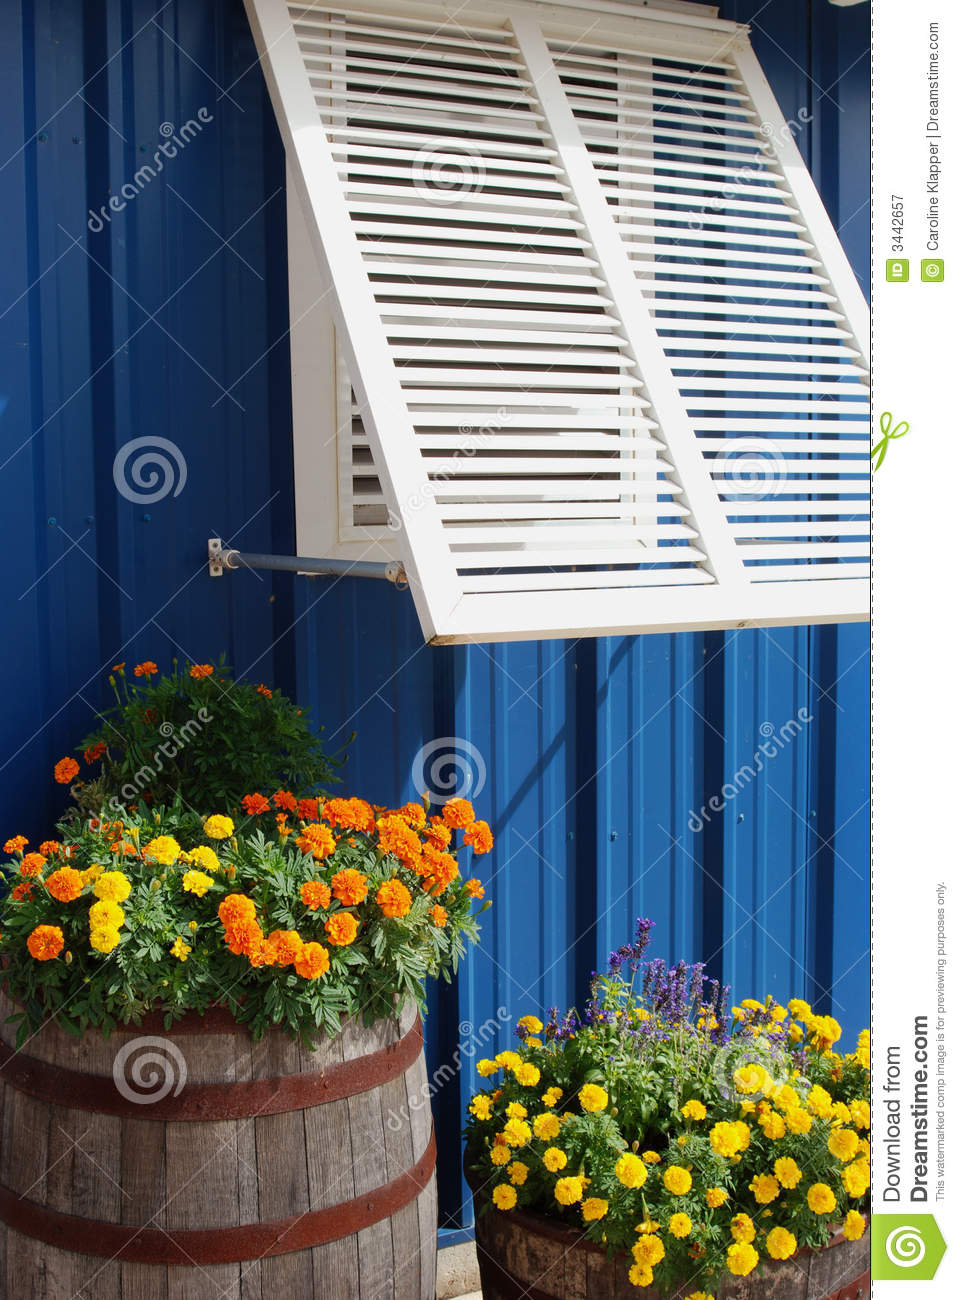 Window shutter and flowers